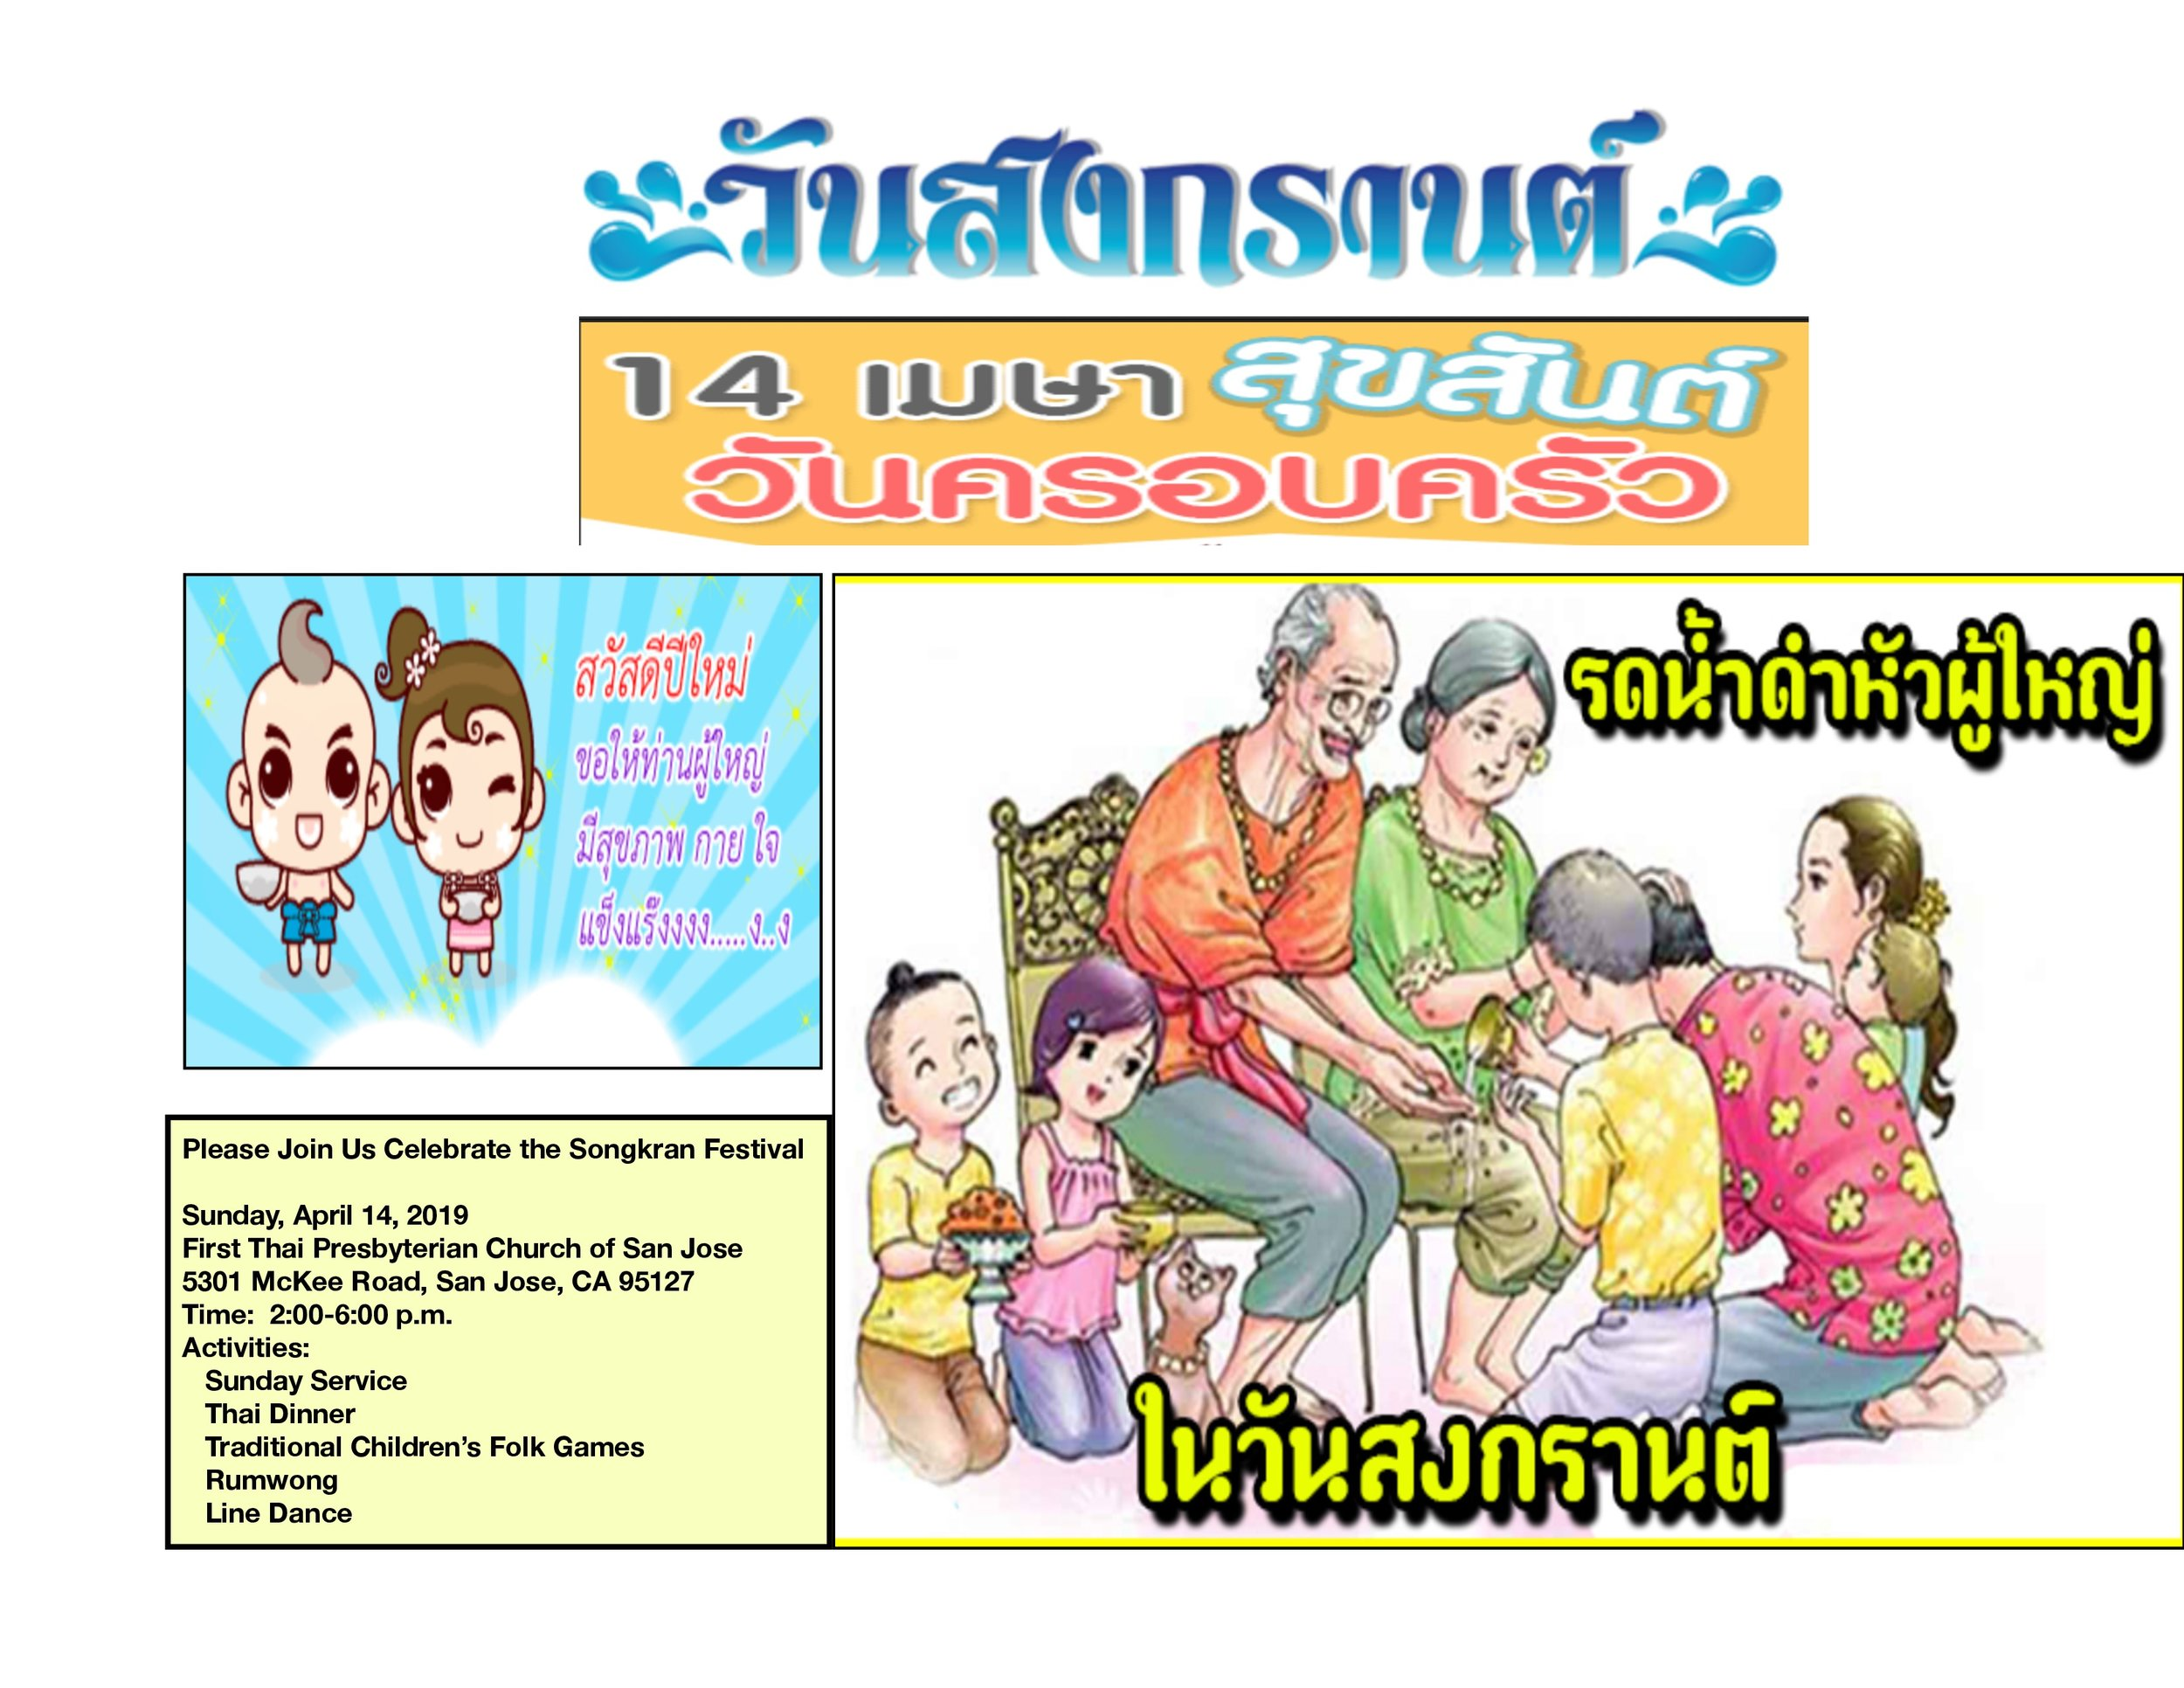 Songkran Invitation_2-page-0.jpg